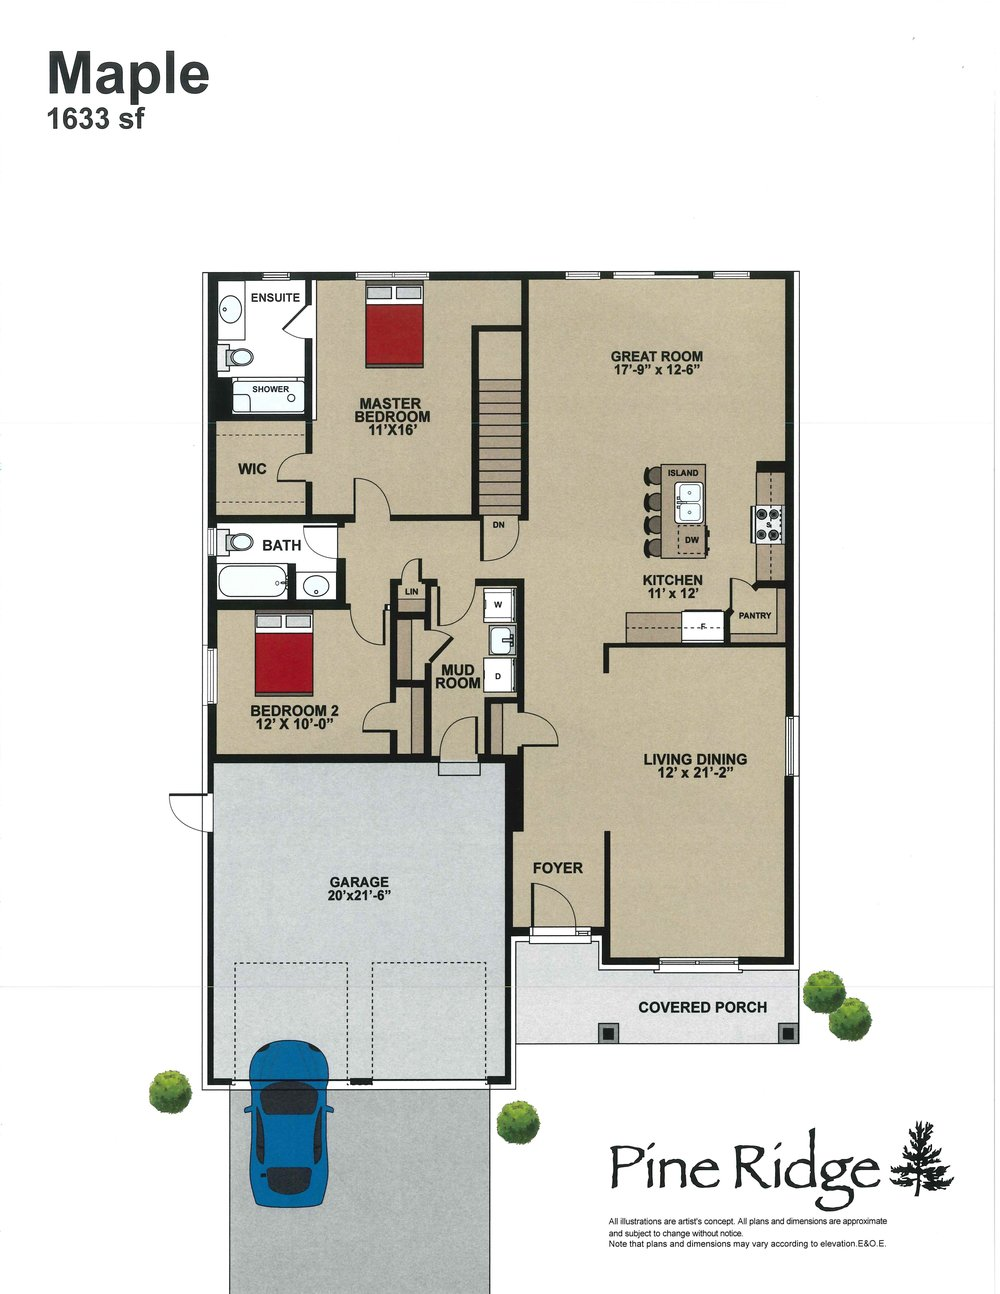 pineridge floorplans 1_Page_6.jpg